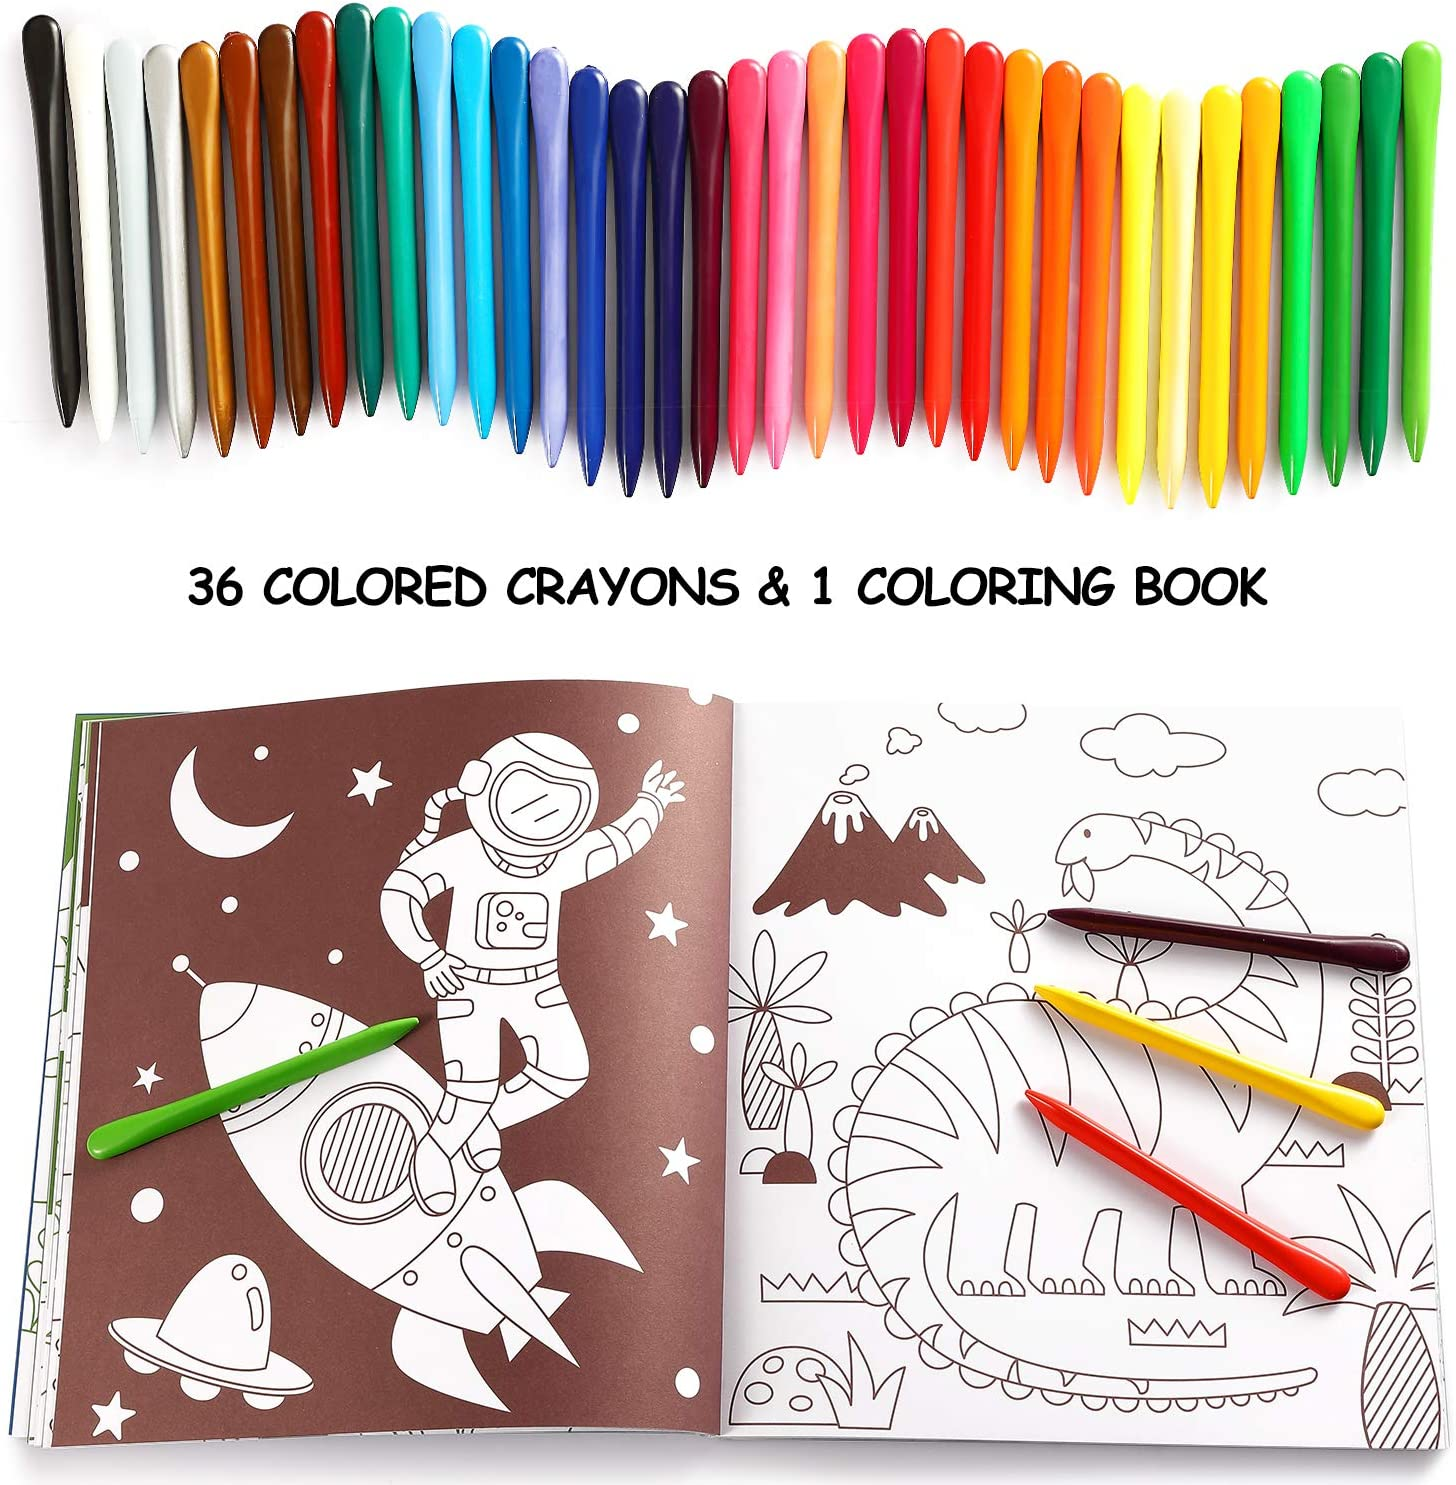 Mibor Crayons Set with Kids Coloring Book - 36 Washable Crayons with 80 Pages Coloring Book, Kids Art Paint Sets, Crayon Painting Supplies for Kids Students Toddlers Beginners Drawing Party Favors: Toys & Games